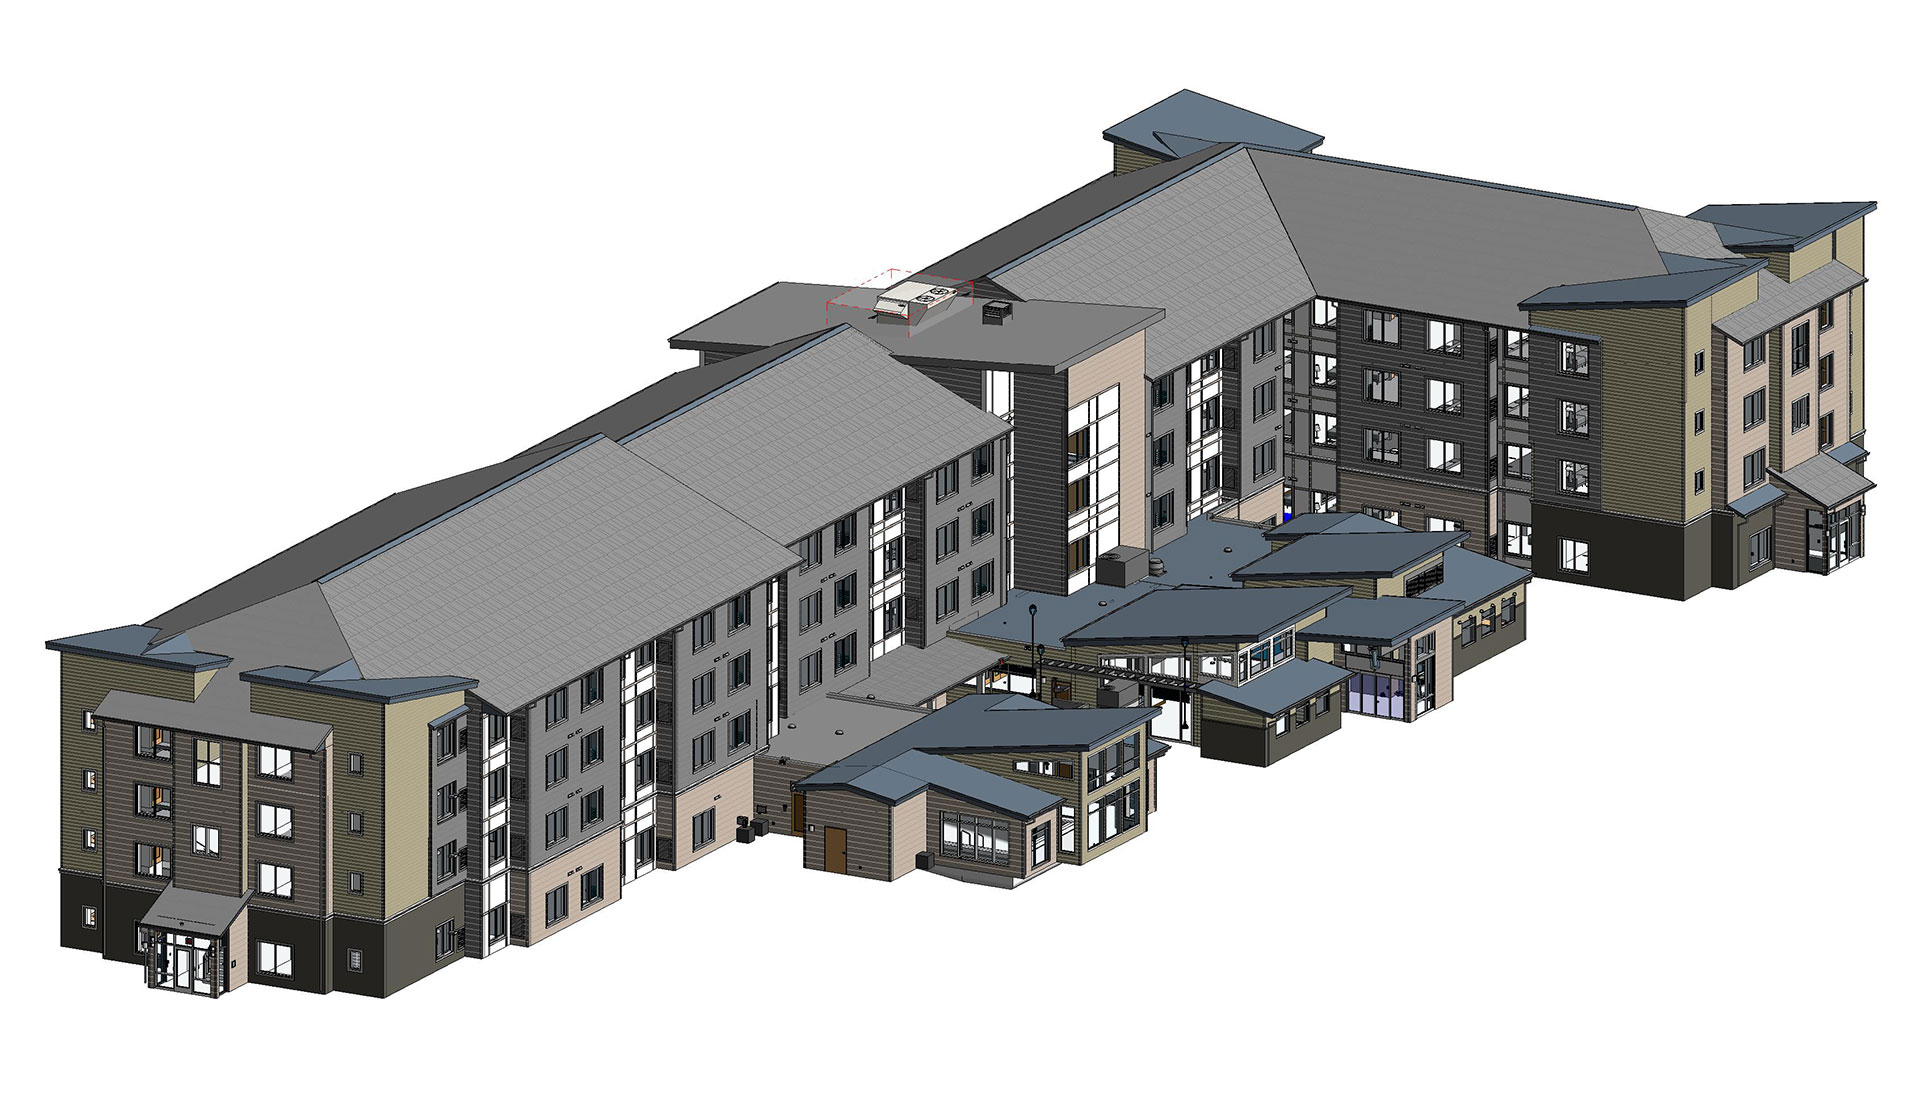 Residence-Inn-Architectural-Model- Revit modeling services